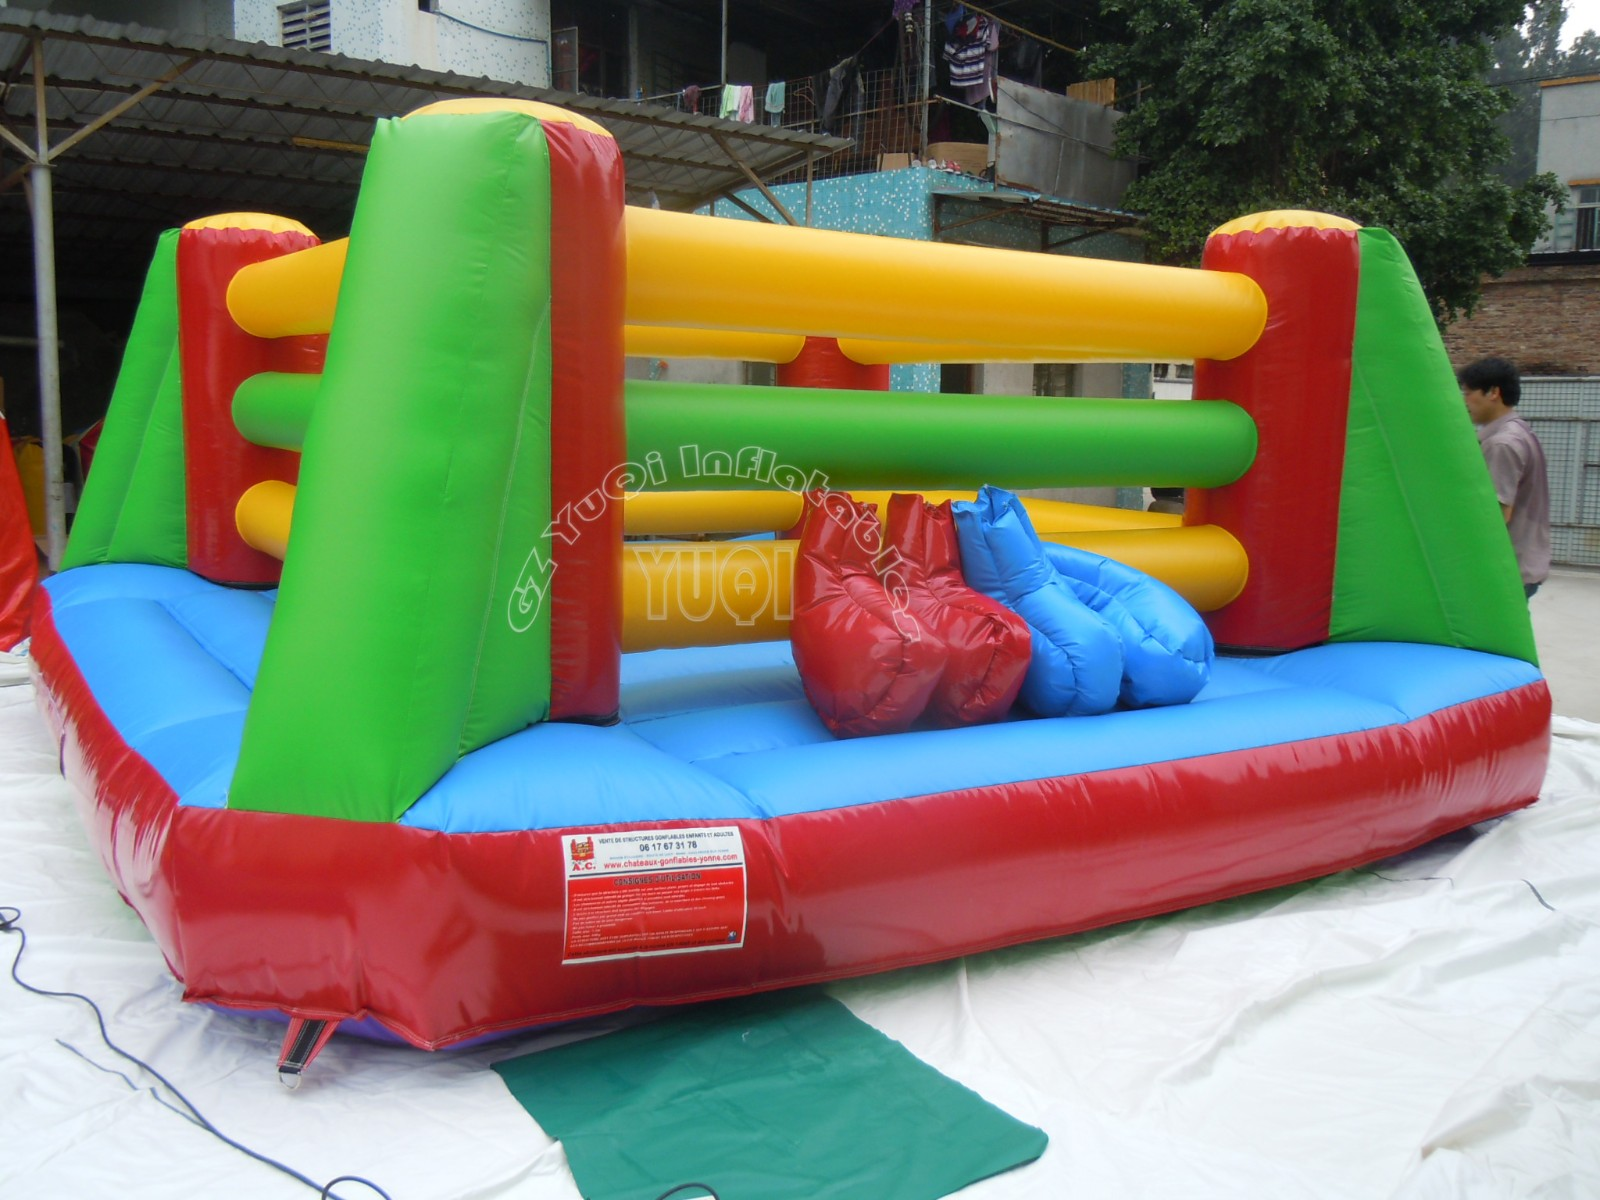 YUQI-Professional Yq670 Pvc Material Comercial Inflatable Game